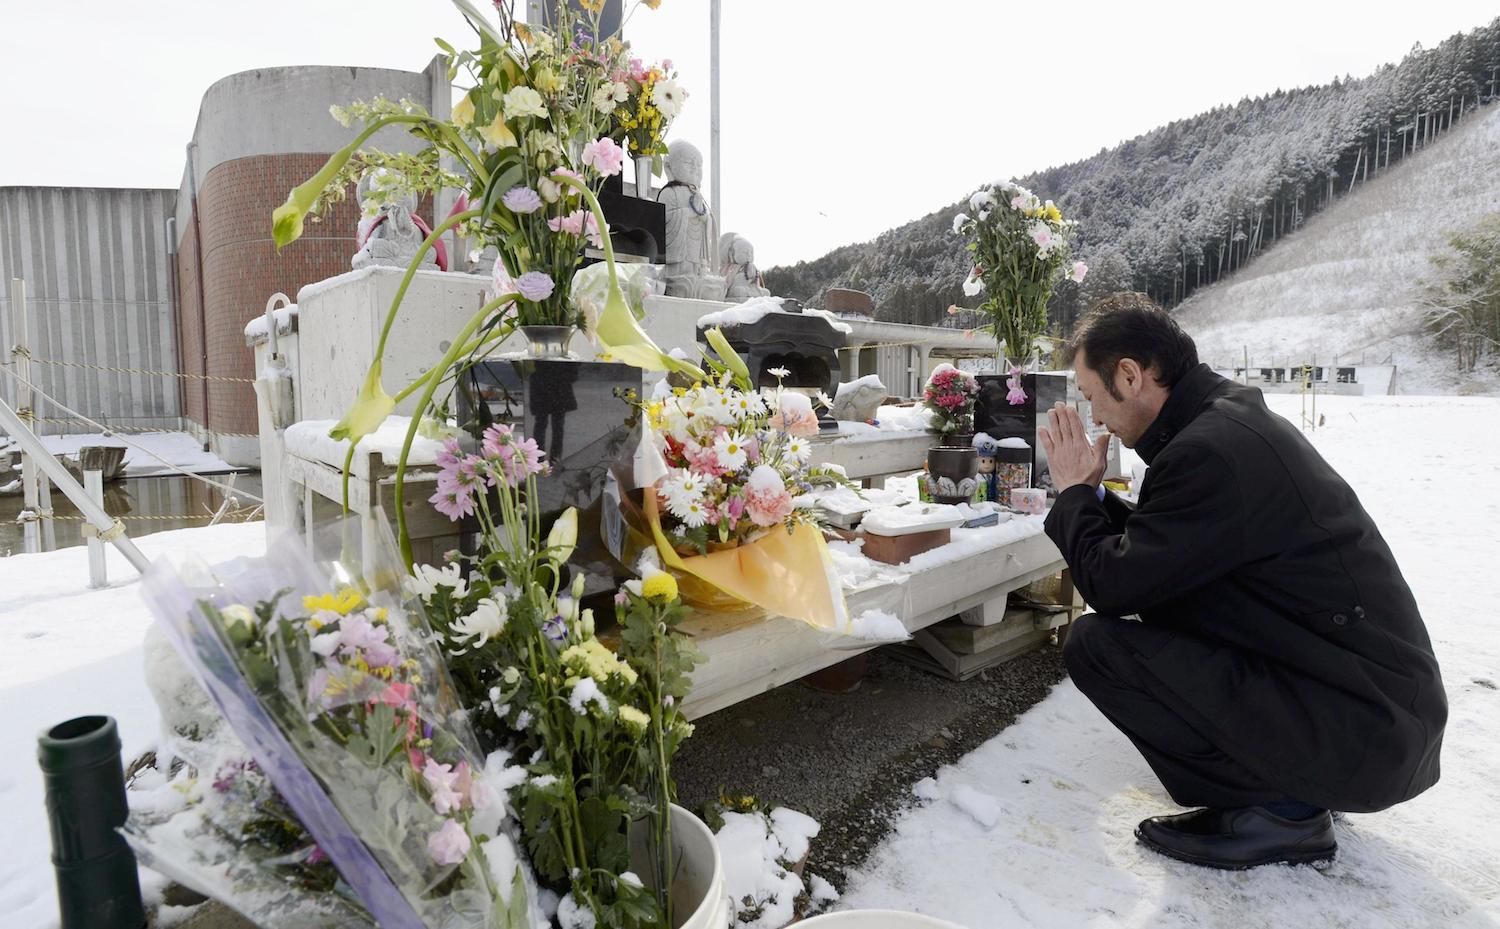 Kazutaka Sato, the father of an elementary school student who perished in the March 11 tsunami in the city of Ishinomaki, Miyagi Prefecture, prays at a memorial in front of the school Monday before submitting a lawsuit with other parents demanding compensation from the city and prefectural governments.